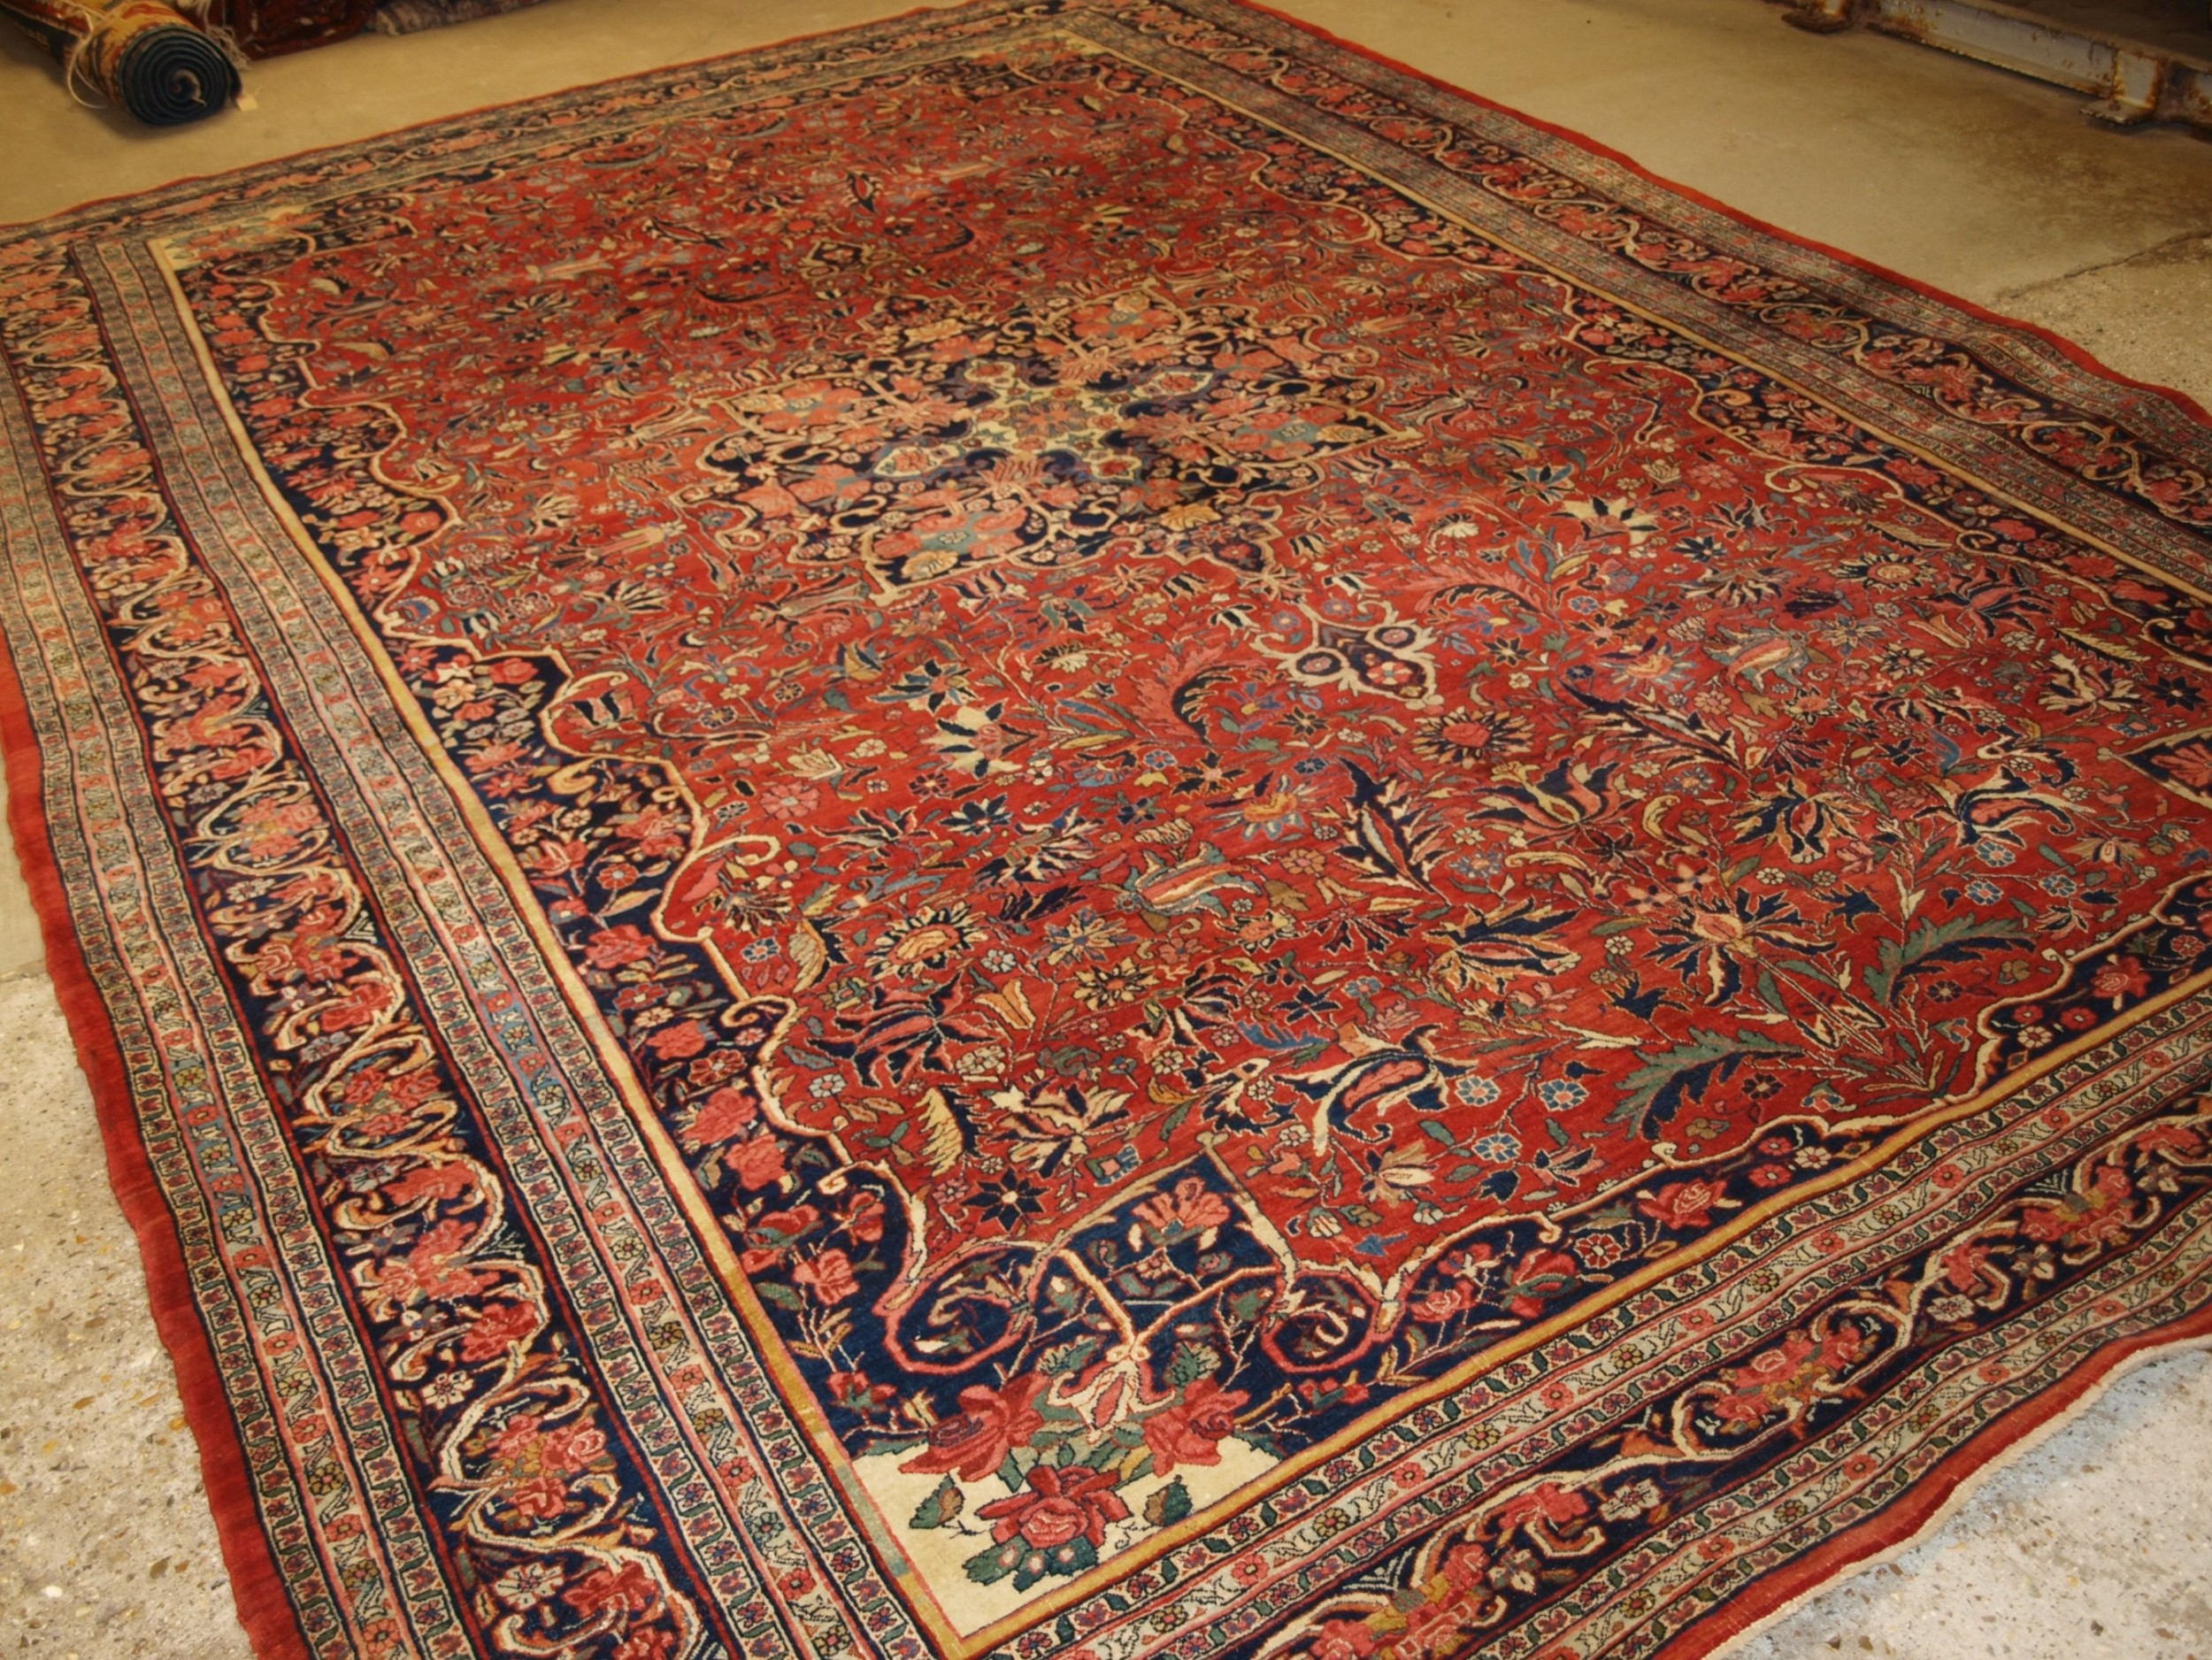 antique bijar carpet of outstanding design and colour country house carpet circa 1880